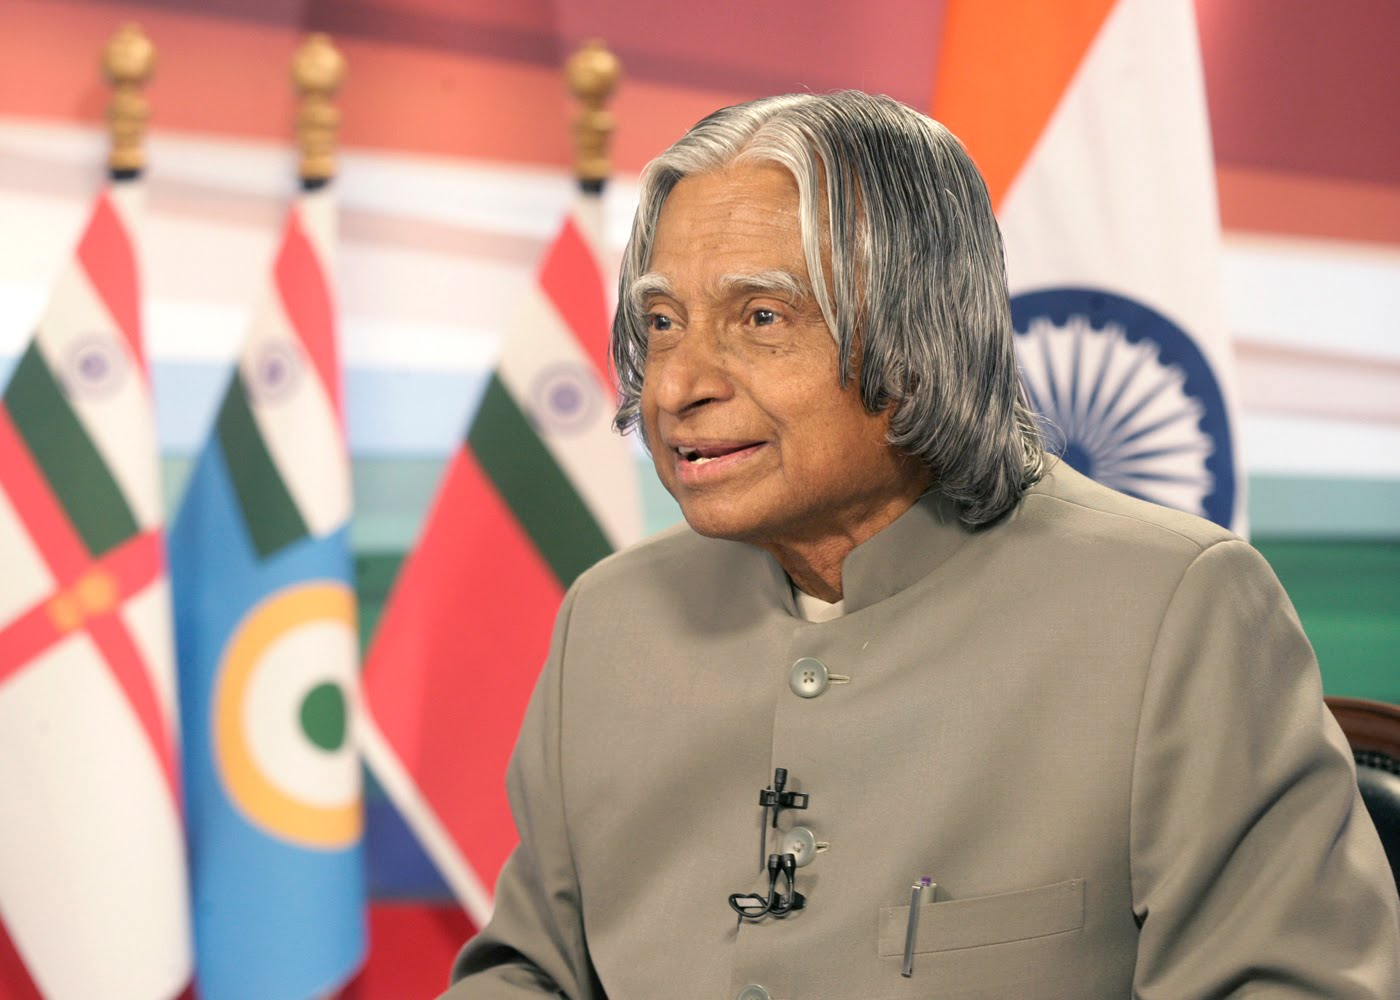 dr abdul kalam 16 facts about apj abdul kalam's life that will make you respect him even more by sw staff india is in mourning as source: dr apj abdul kalam 8.